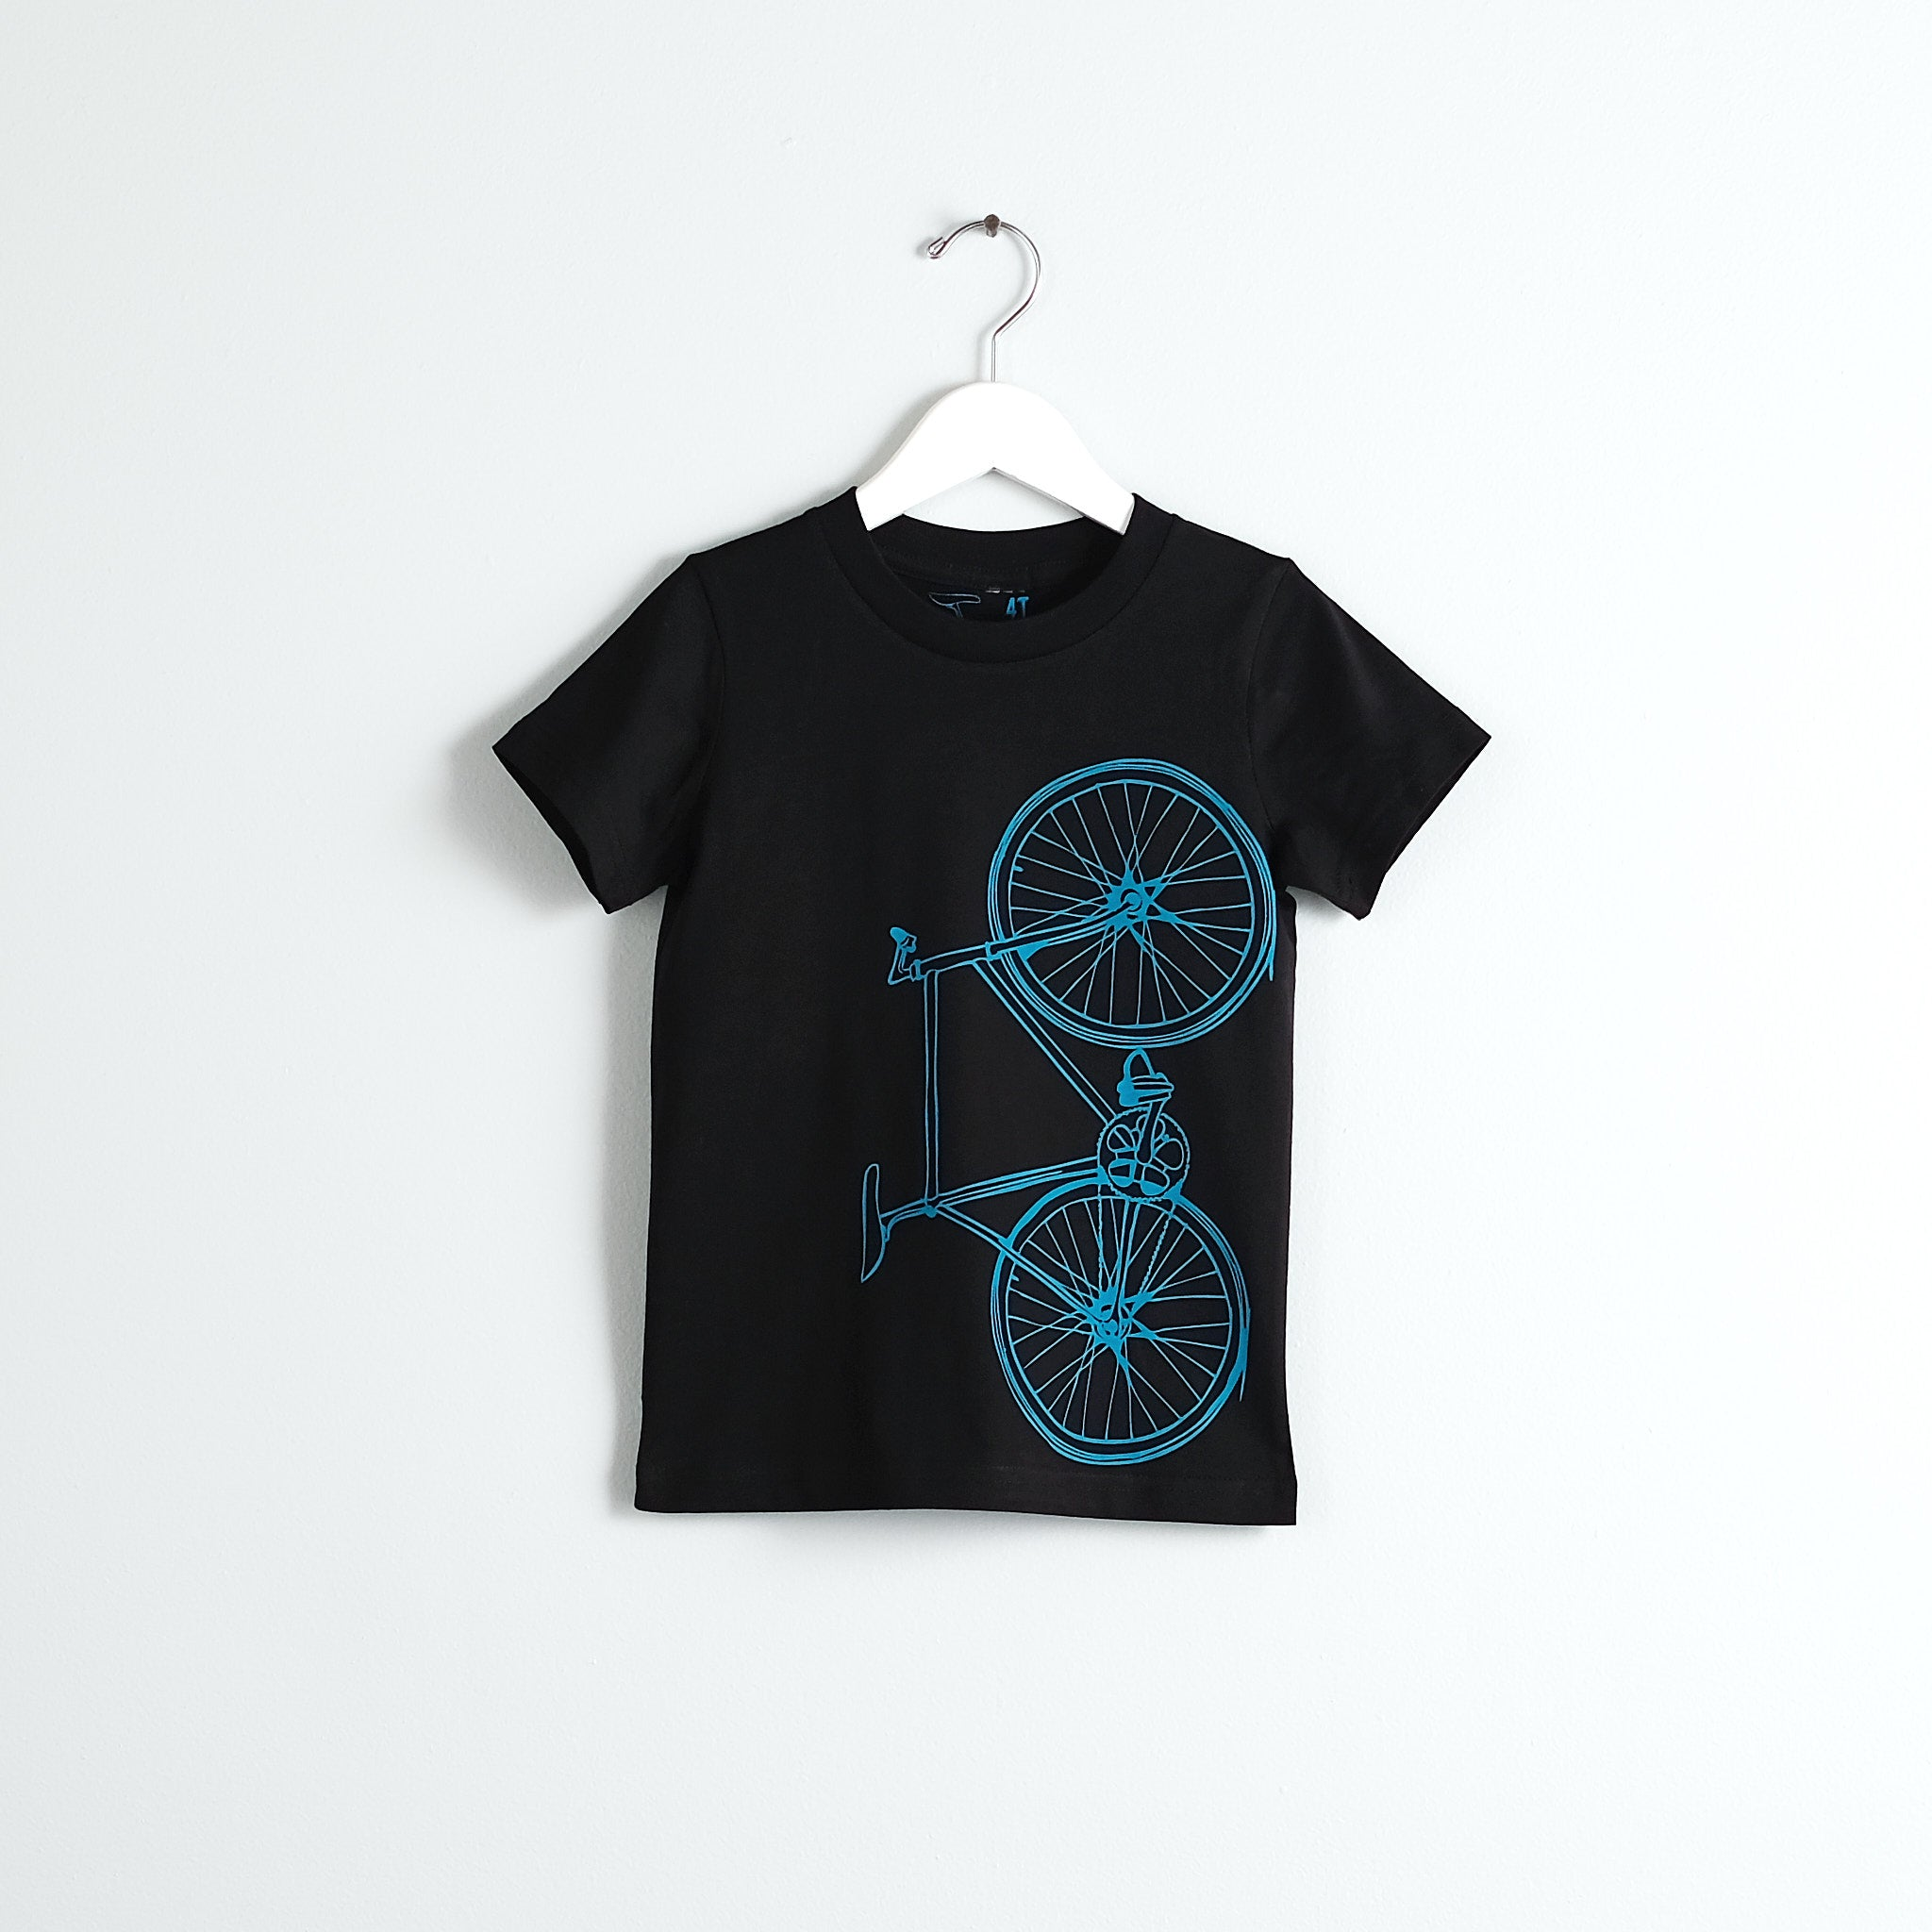 Like Father, Like Son Fixie T-Shirt Set, Bright Teal on Black Cotton Tee